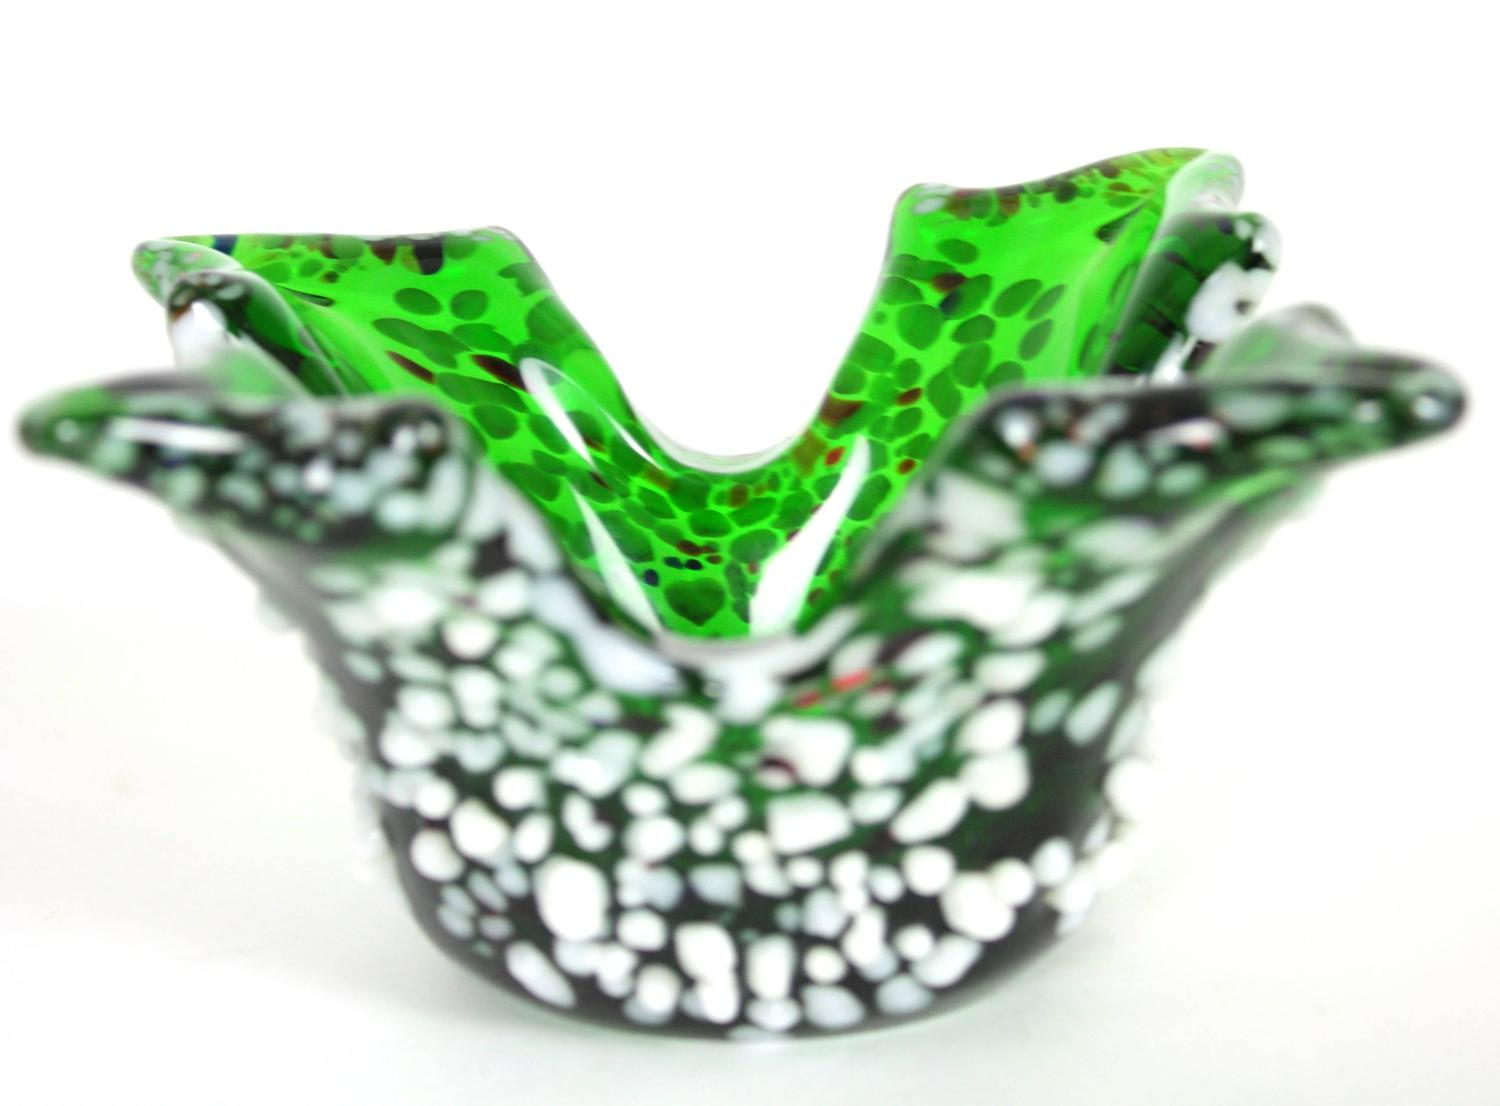 Sculptural Emerald Green Murano Art Glass Bowl With White Murrine Decorations For Sale At 1stdibs